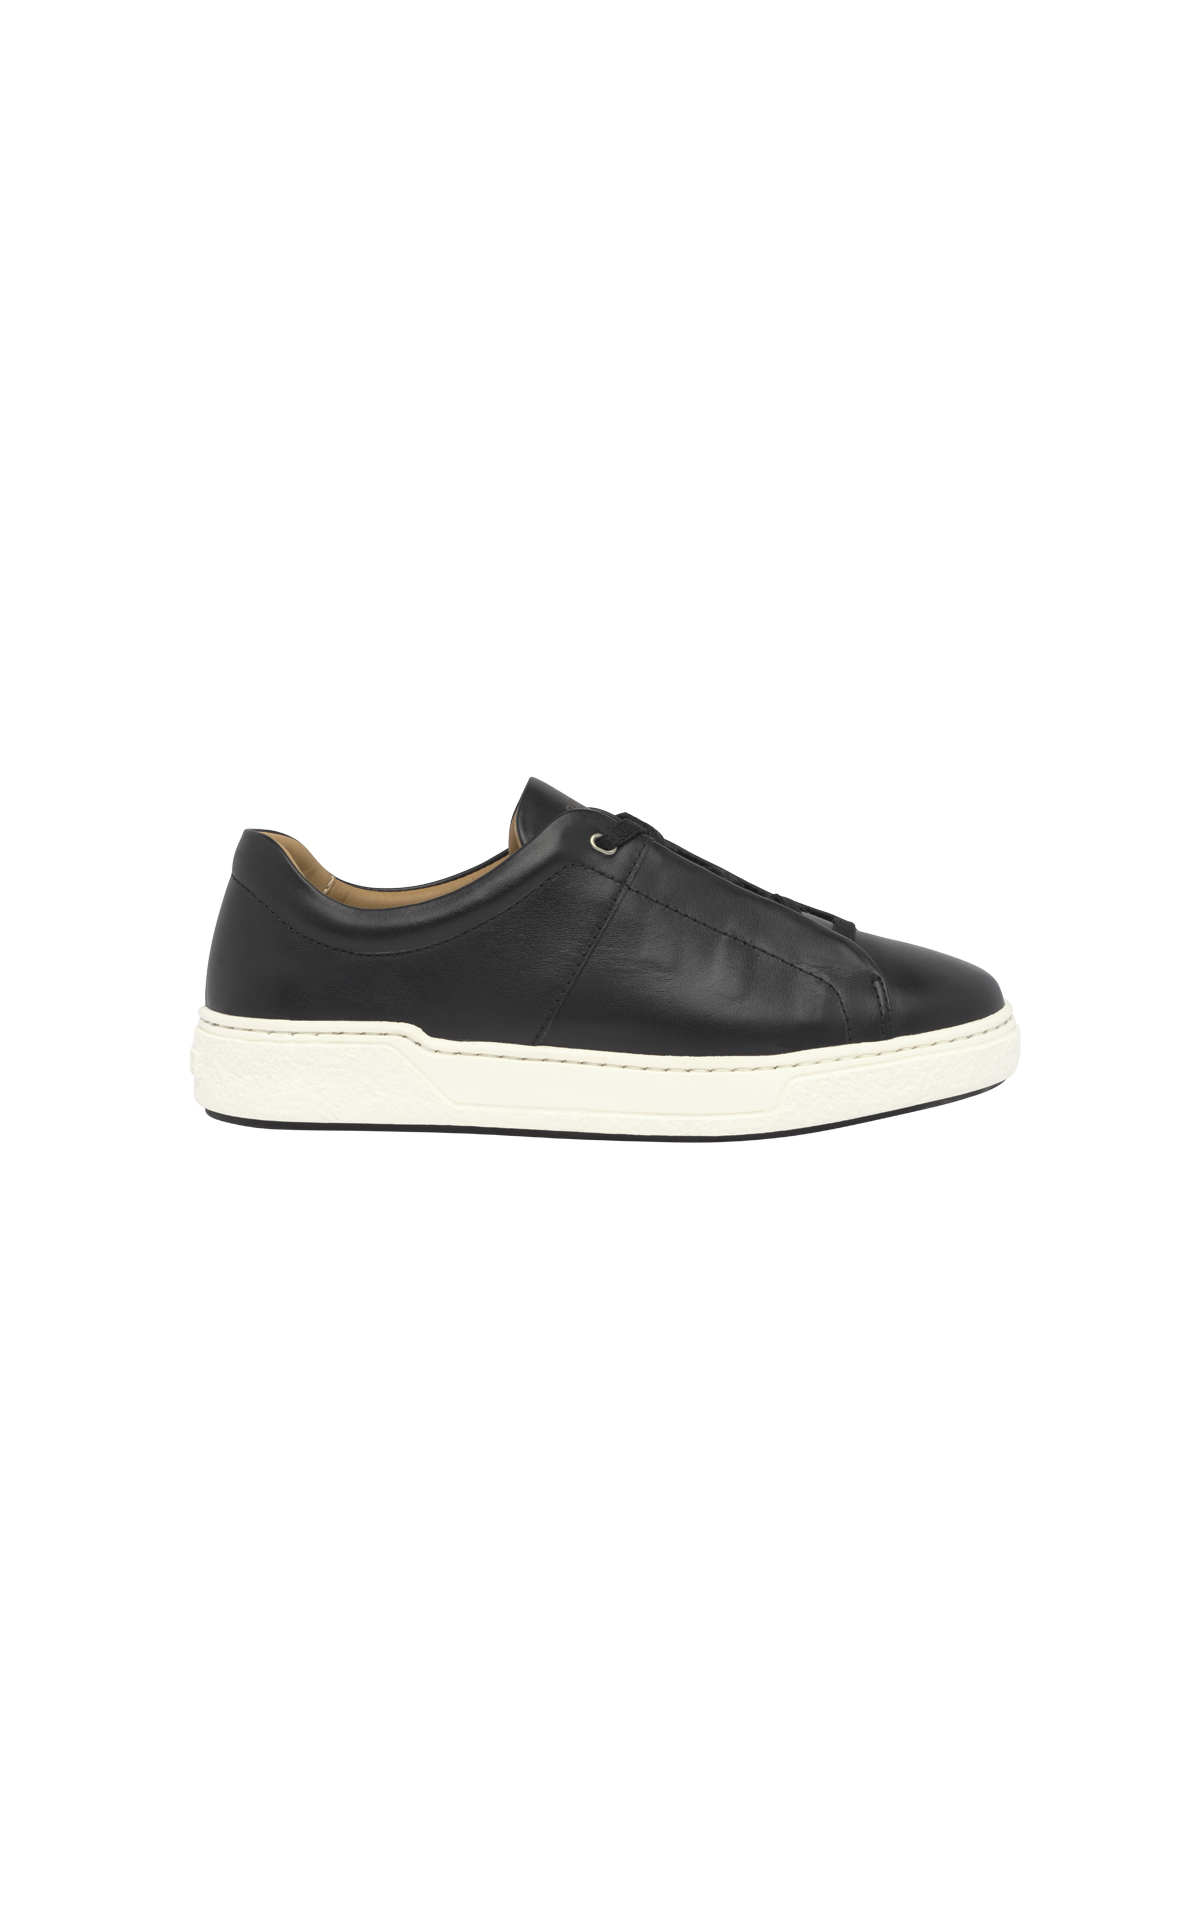 Black sneakers man Lottusse